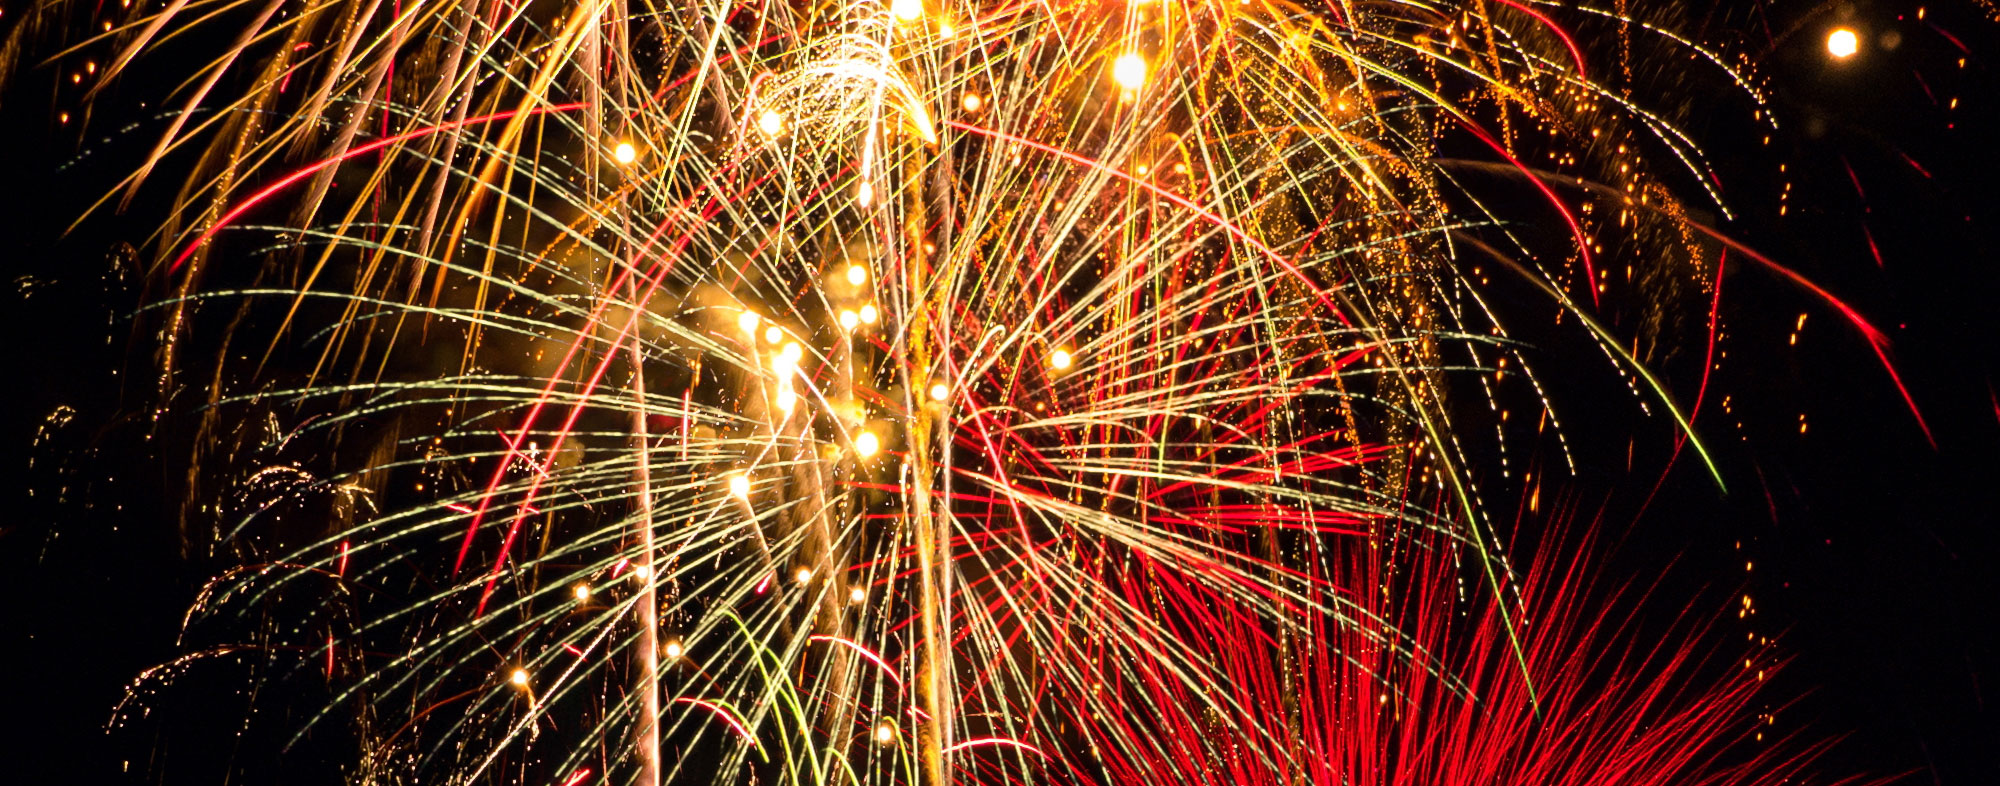 Because of the brightness and volume of fireworks, dogs may be scared